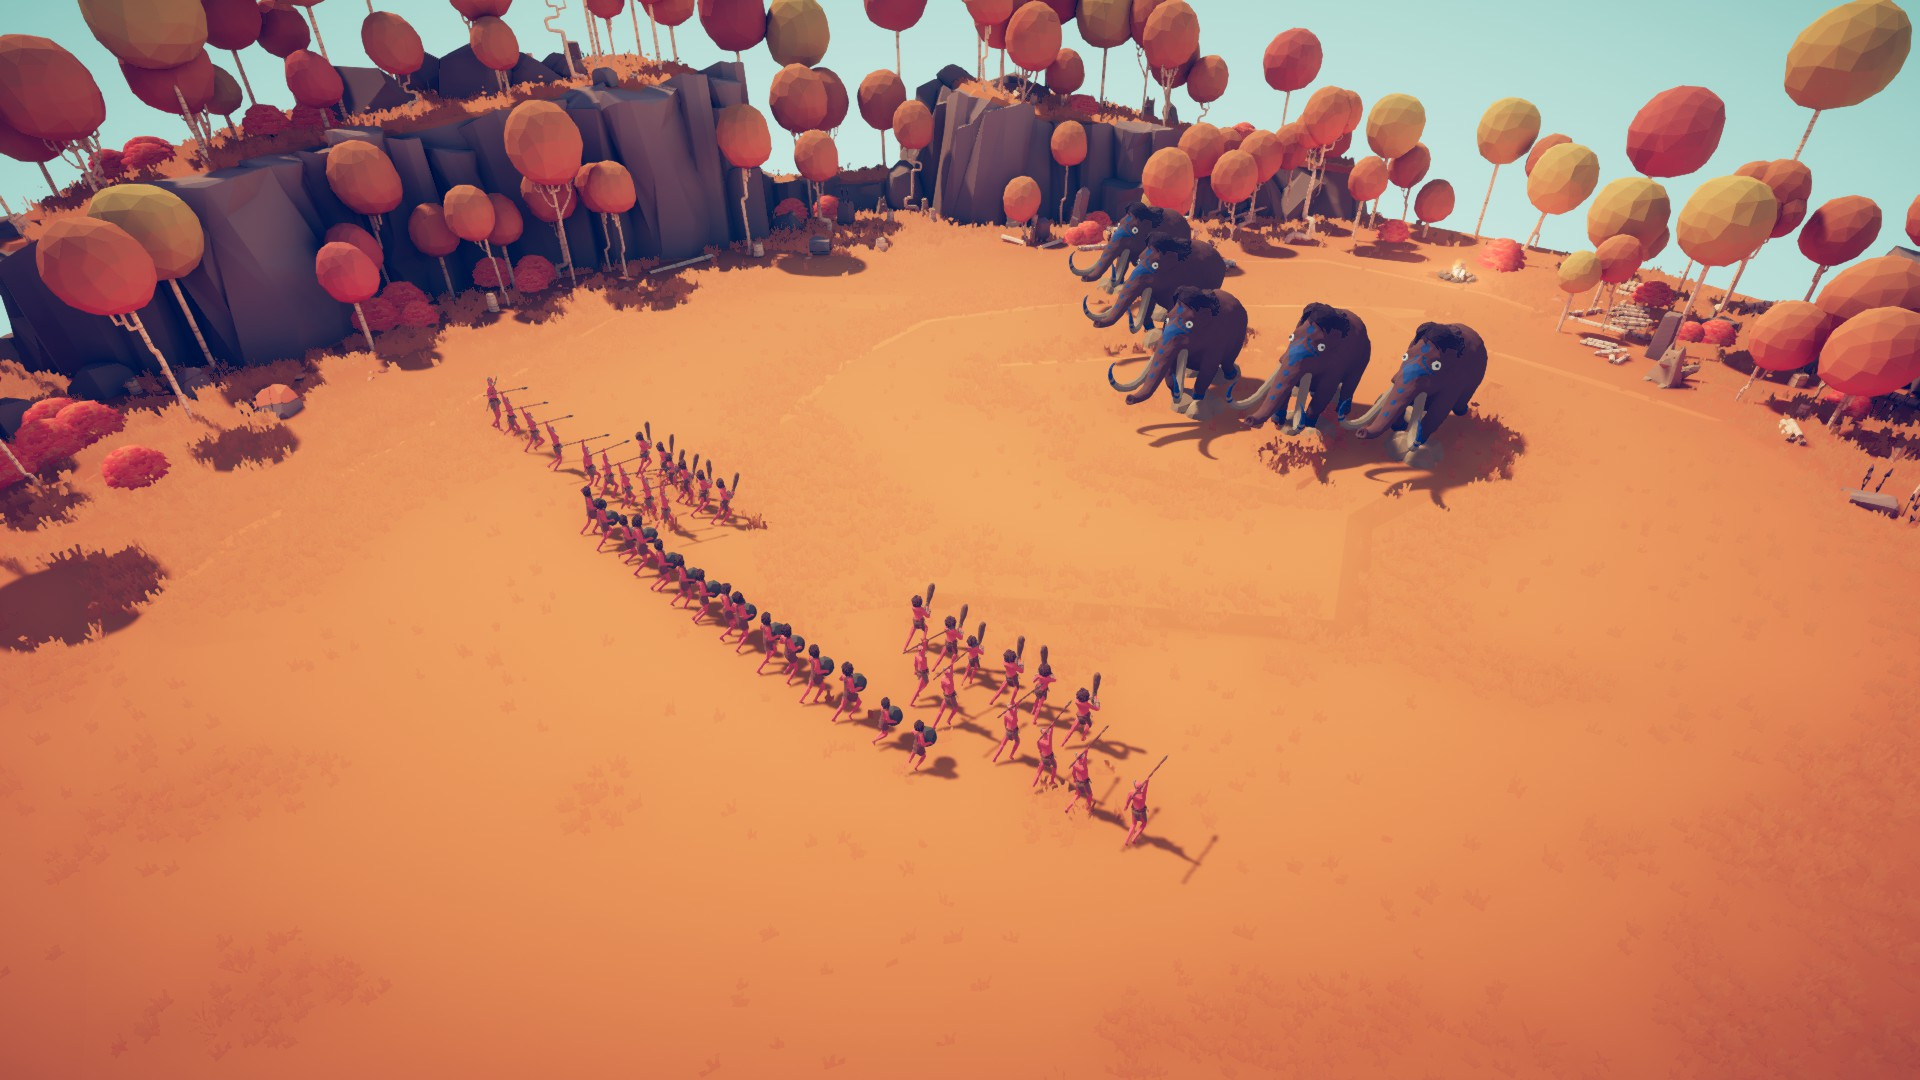 Link Tải Game Totally Accurate Battle Simulator Miễn Phí